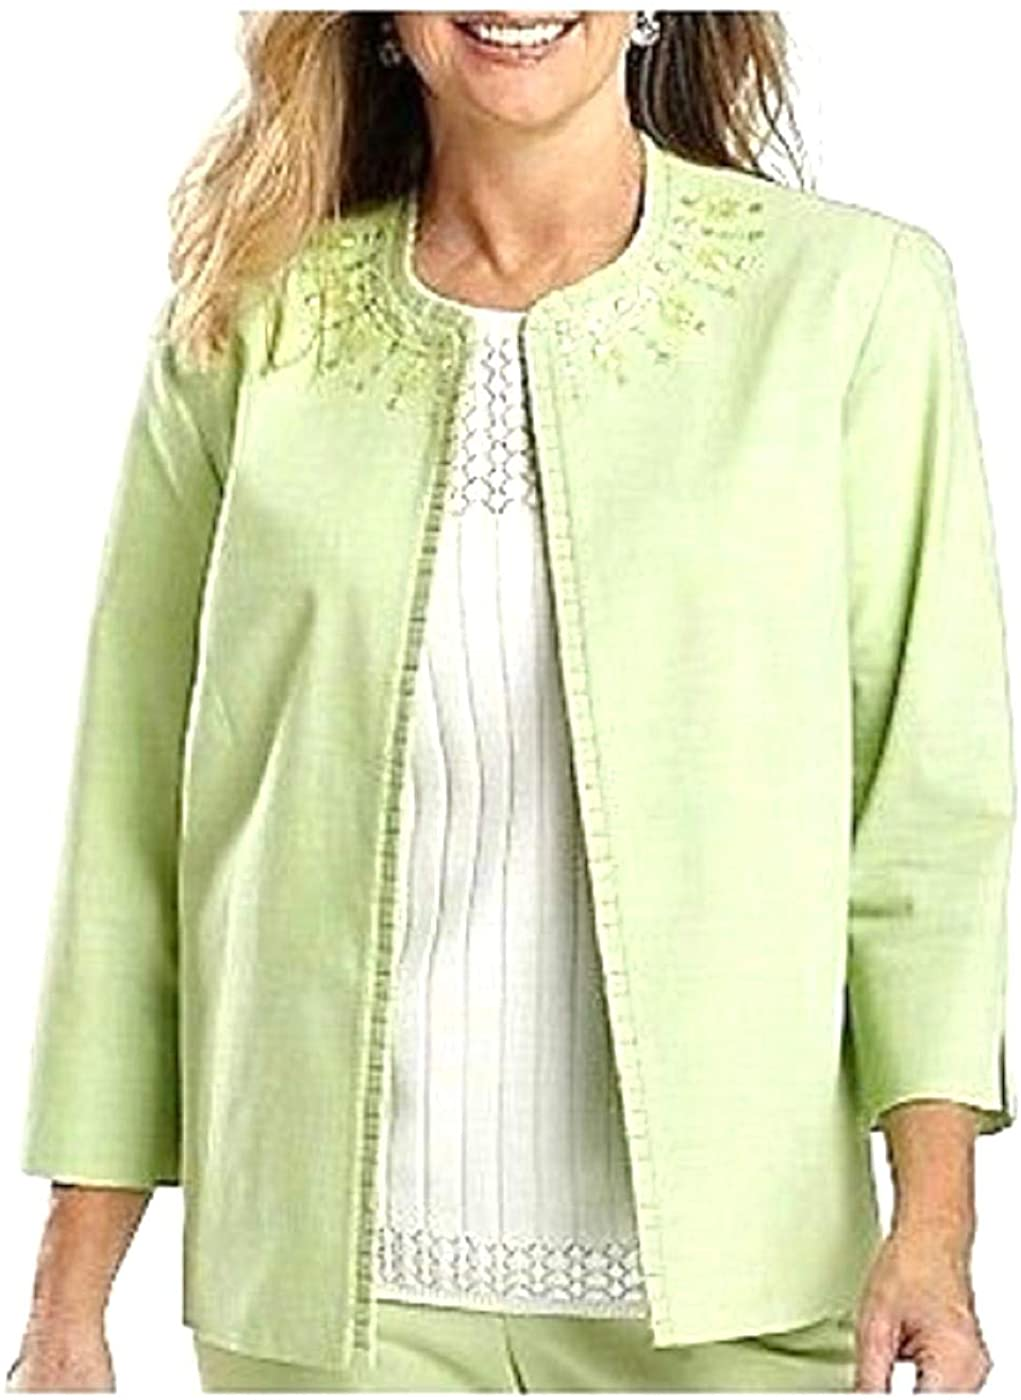 Alfred Dunner New Primrose Garden Beaded Jacket Size 12 Color: Mint Green